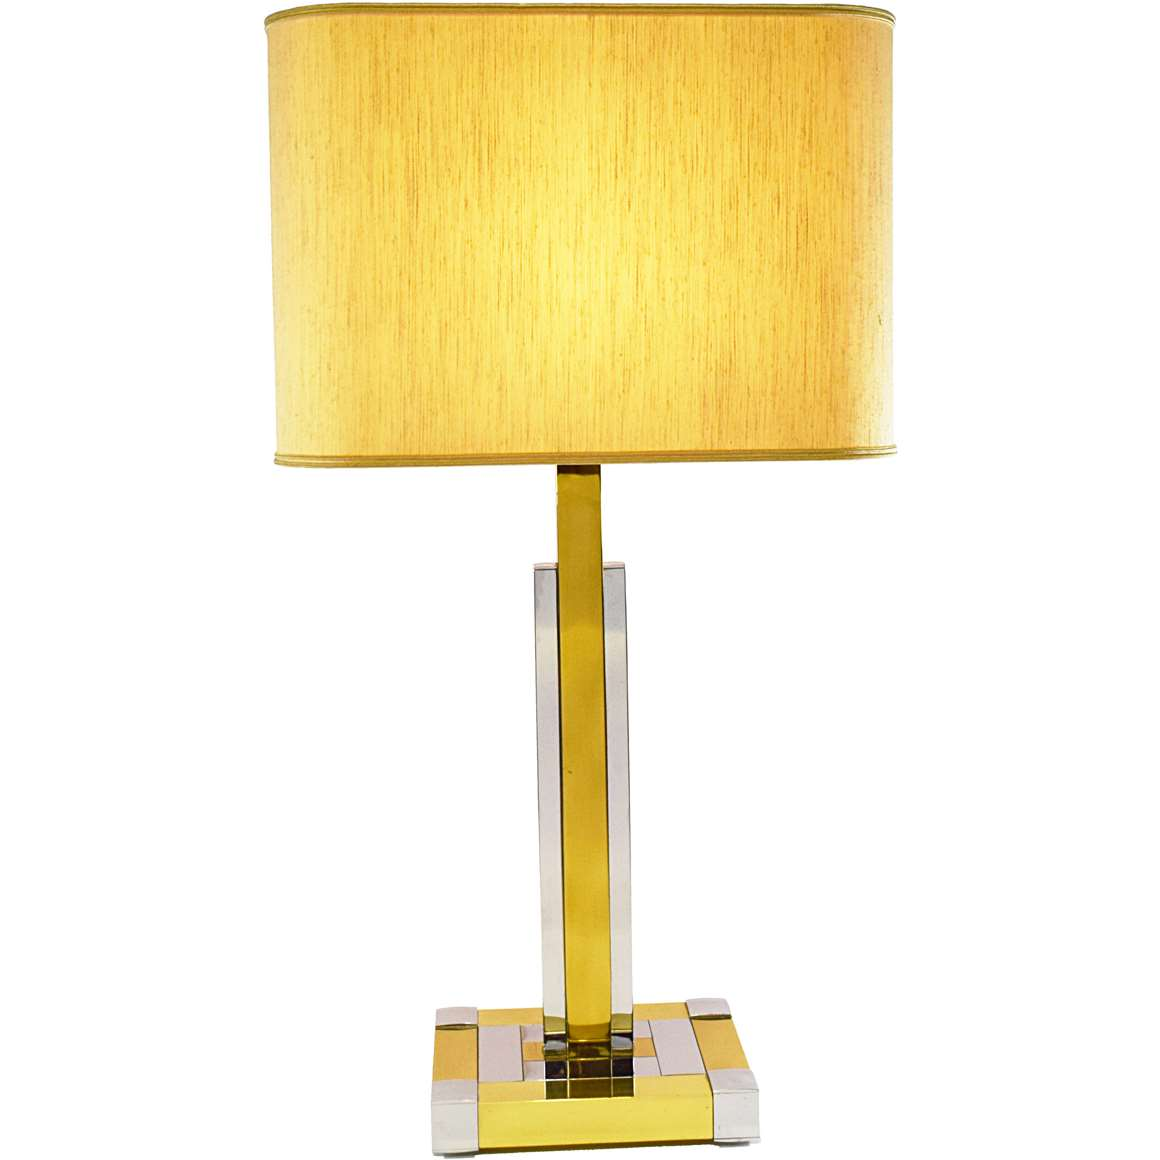 Willy Rizzo Table Lamp Vintage Info All About Vintage Lighting